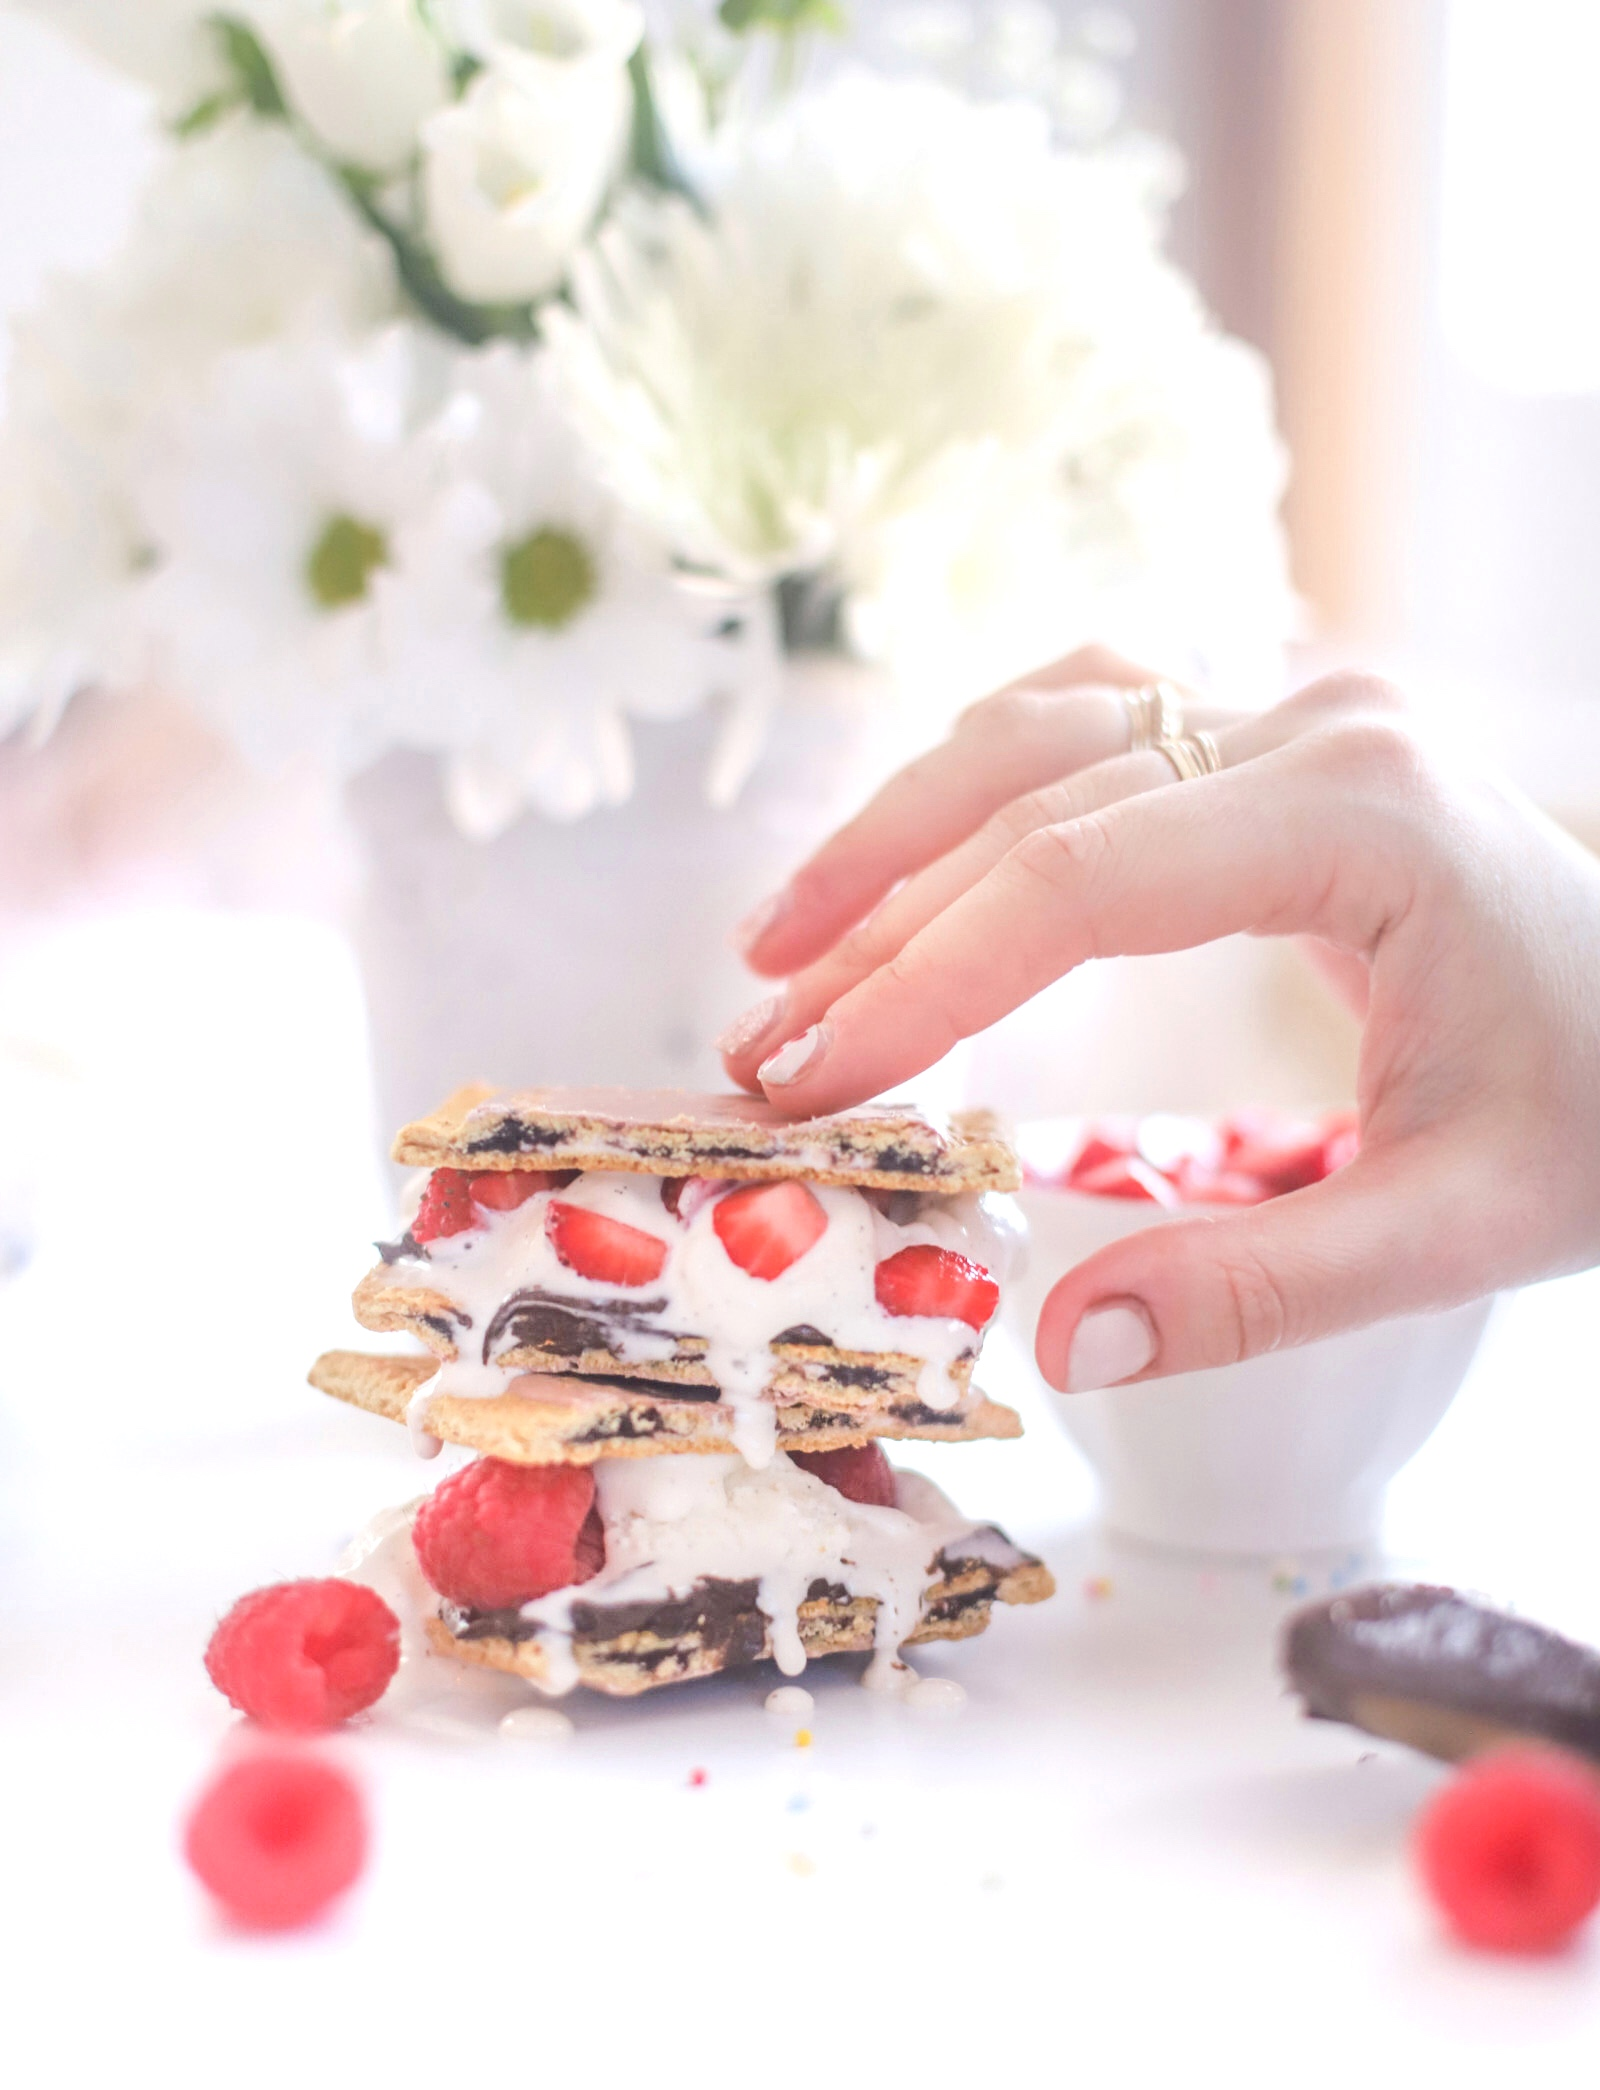 hand holding a dessert with berries and ice cream